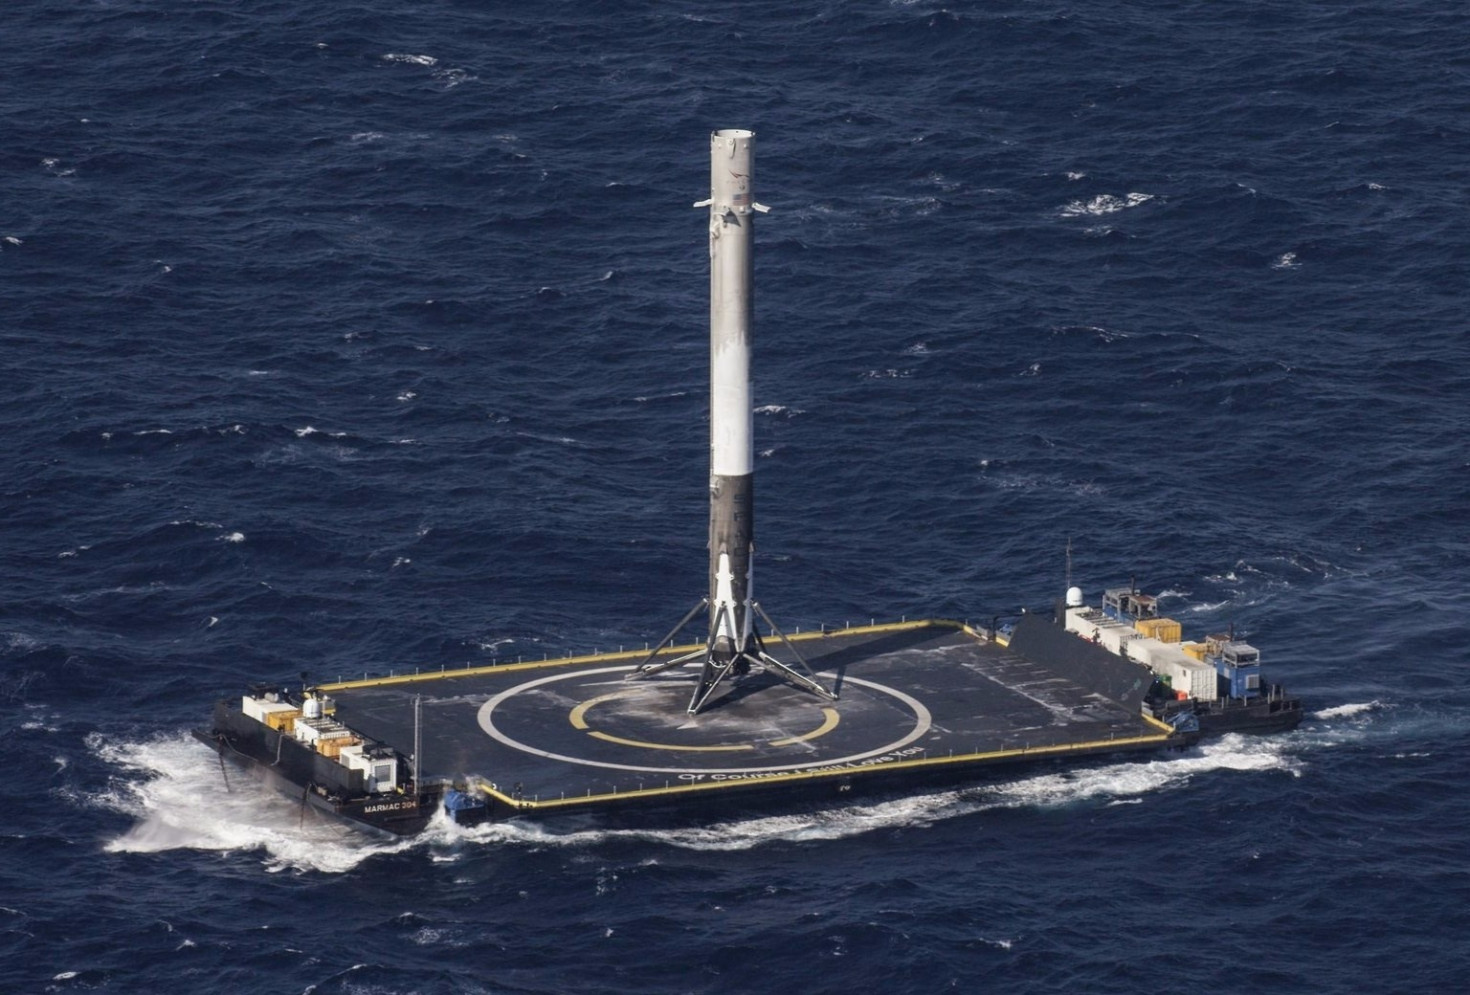 Elon Musk's SpaceX on brink of `Wright Brothers moment' with reused rocket